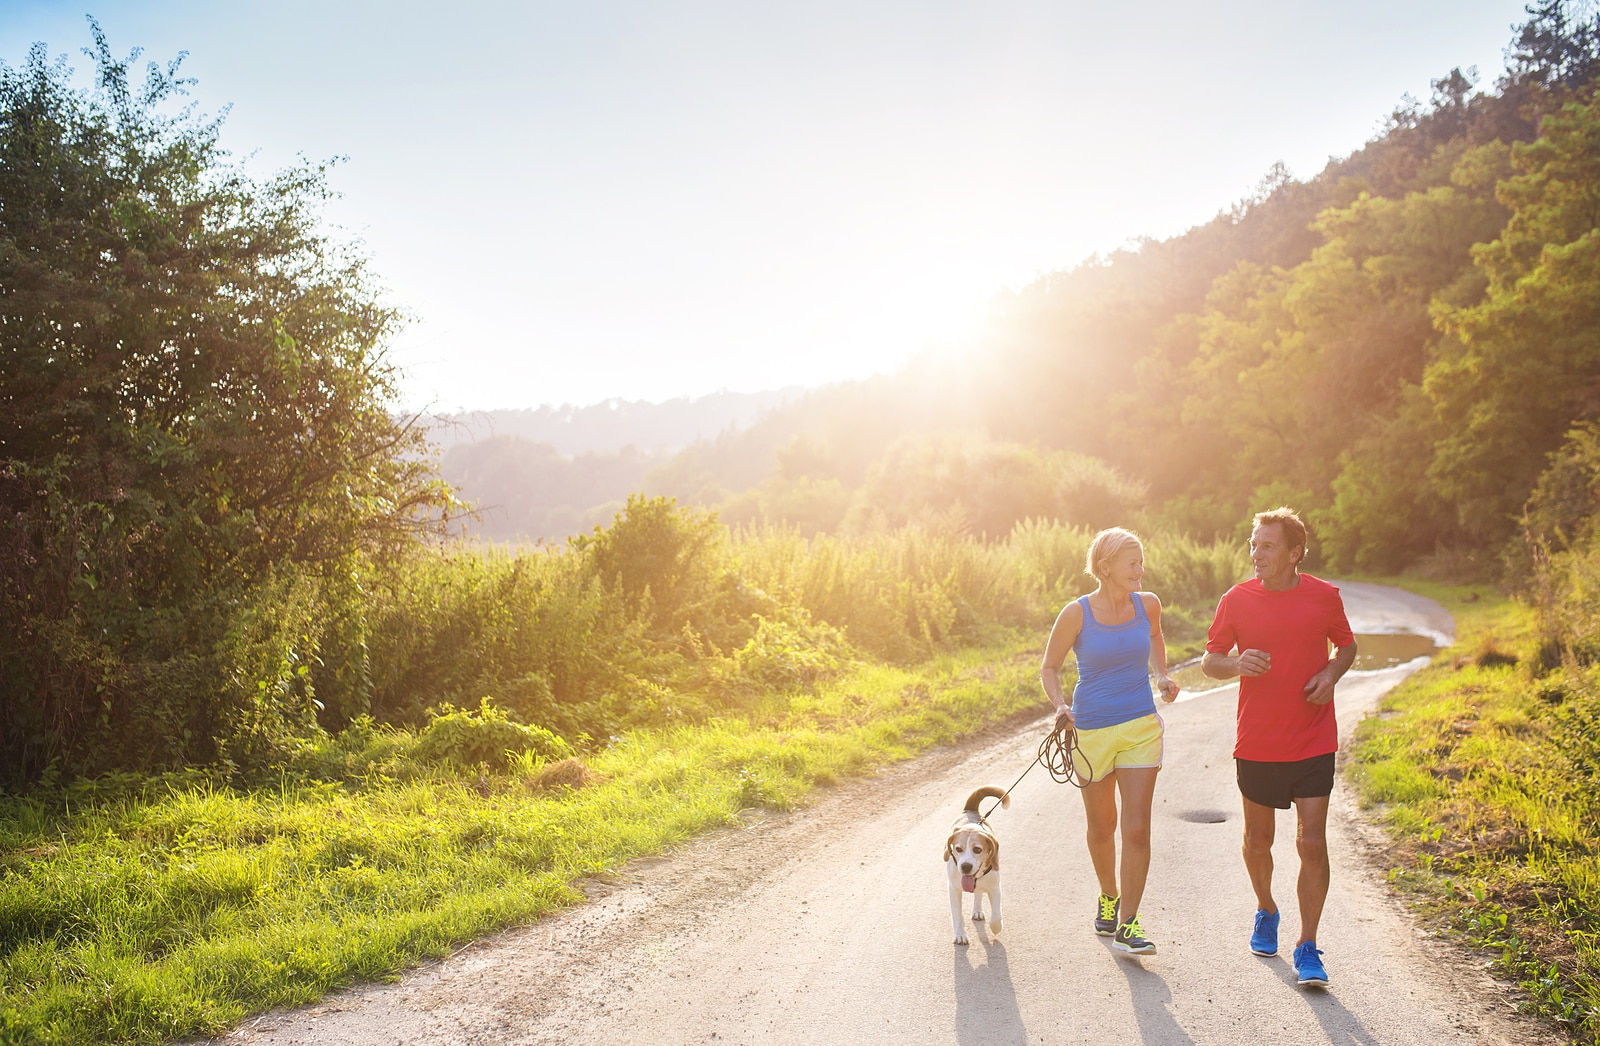 Couple in running gear run on a mountain trail with a beagle leashed beside them.